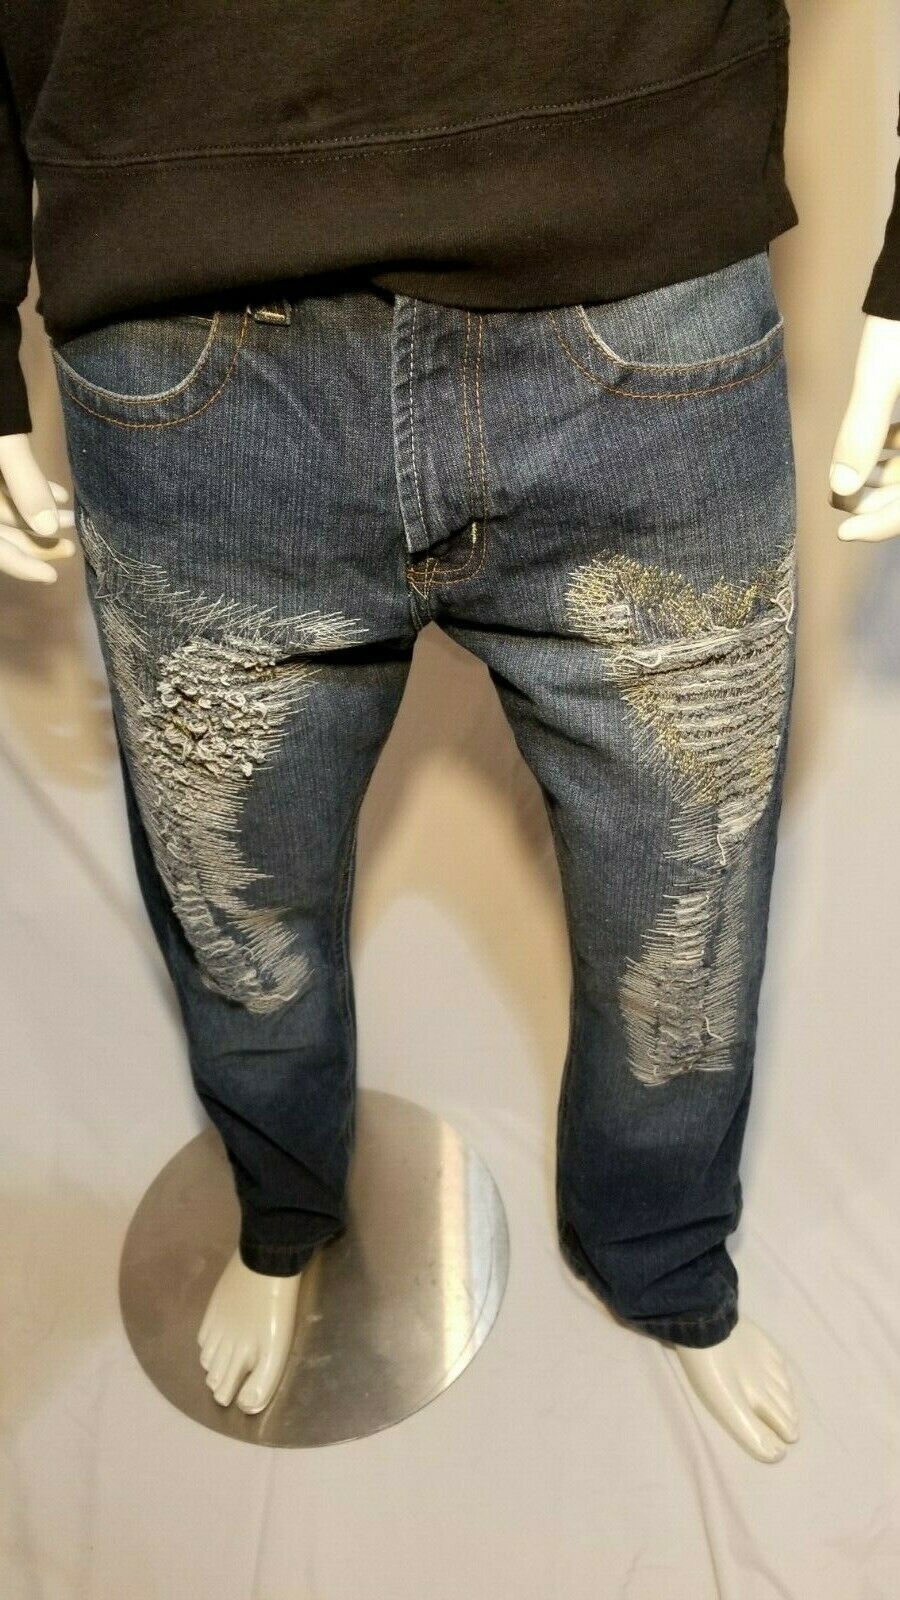 Indigo Thirty Jeans Faded Dark Wash Straight Leg 32x30 Men's